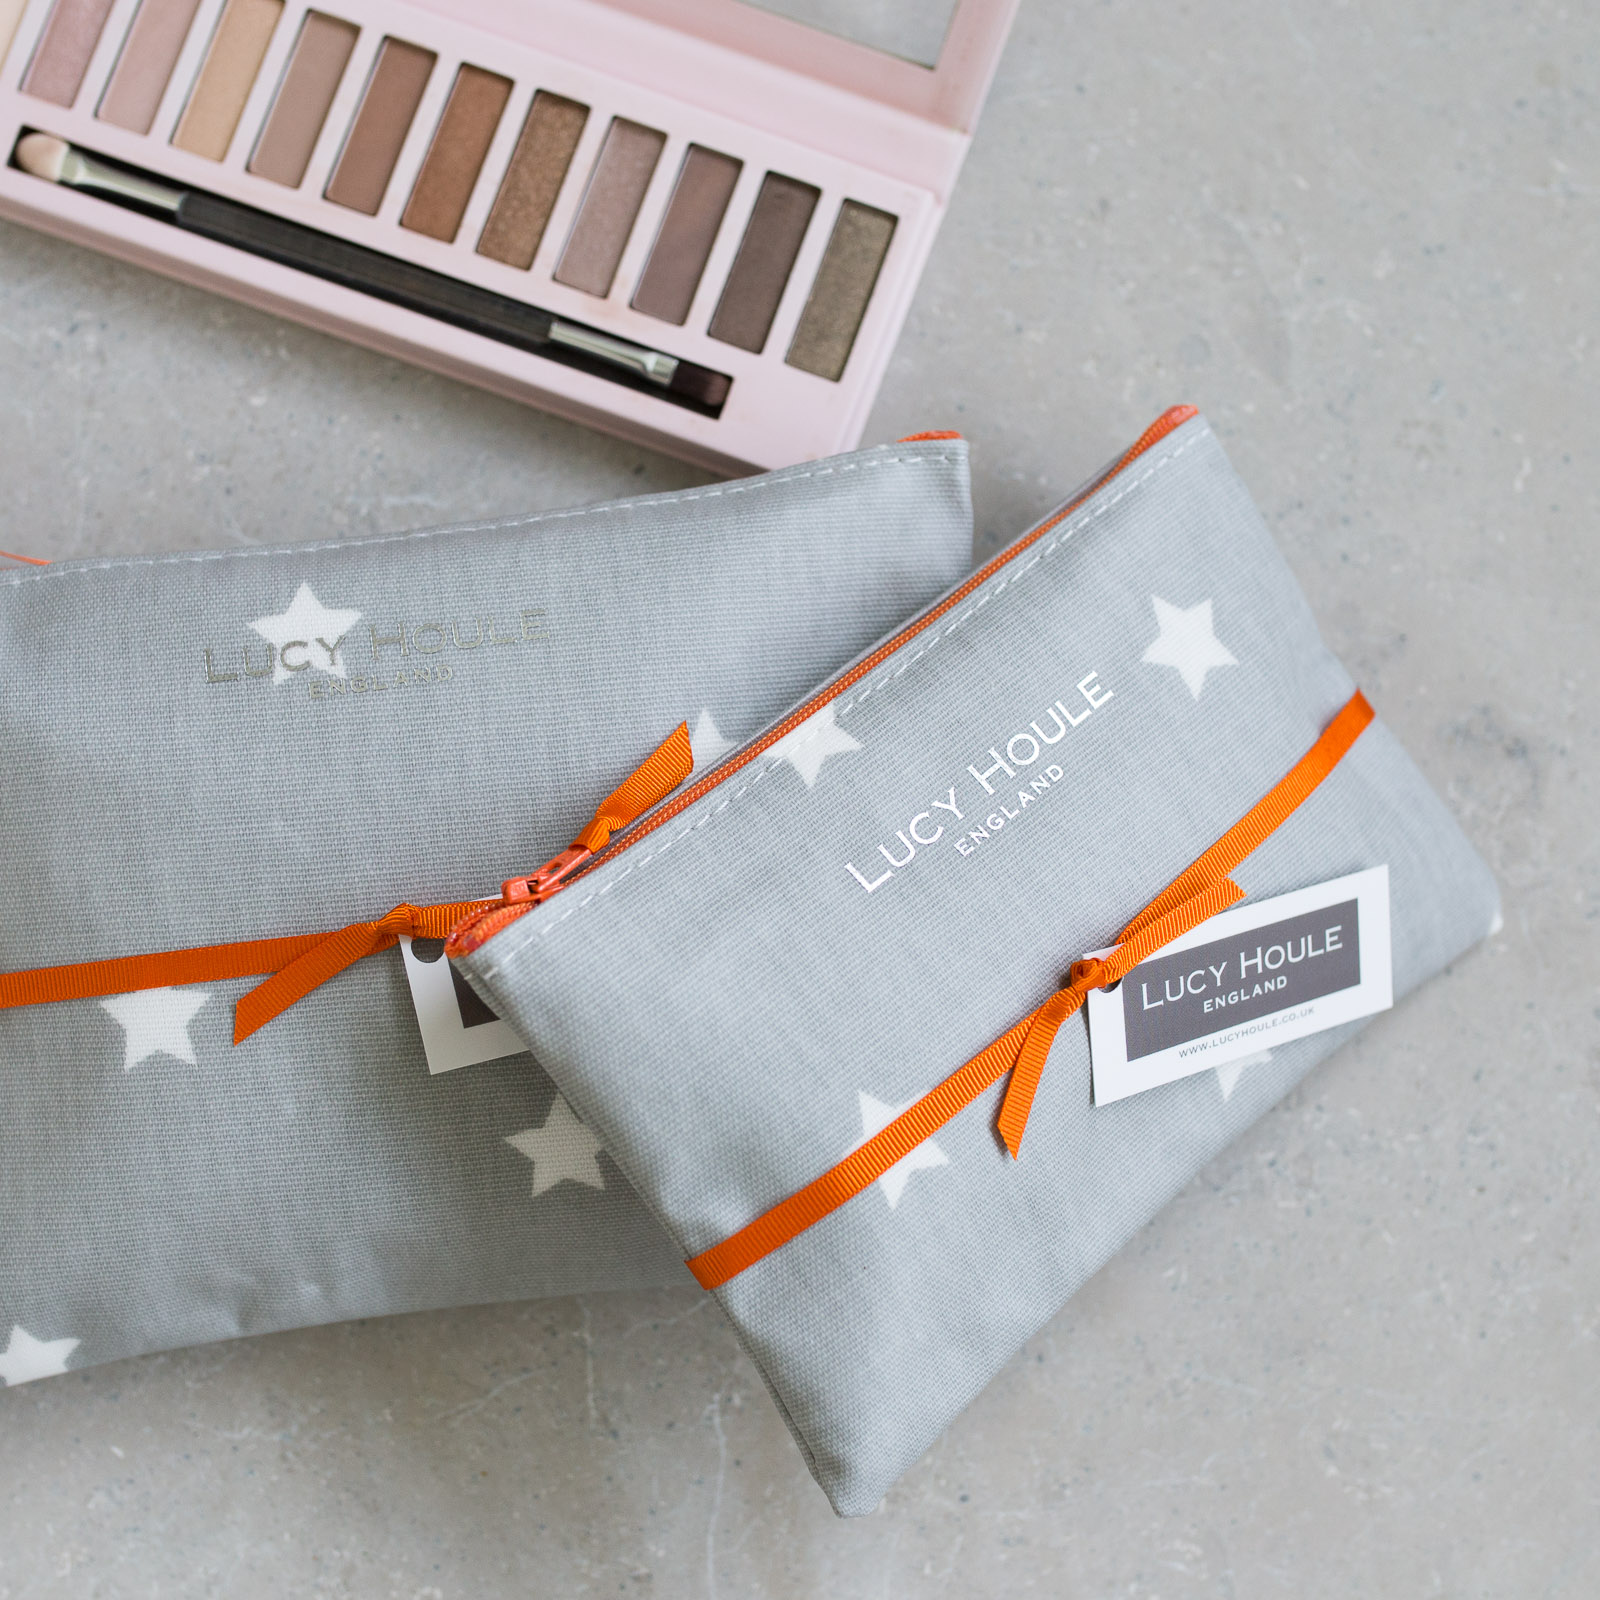 Grey & White Star Make-Up Bag with Orange Zip